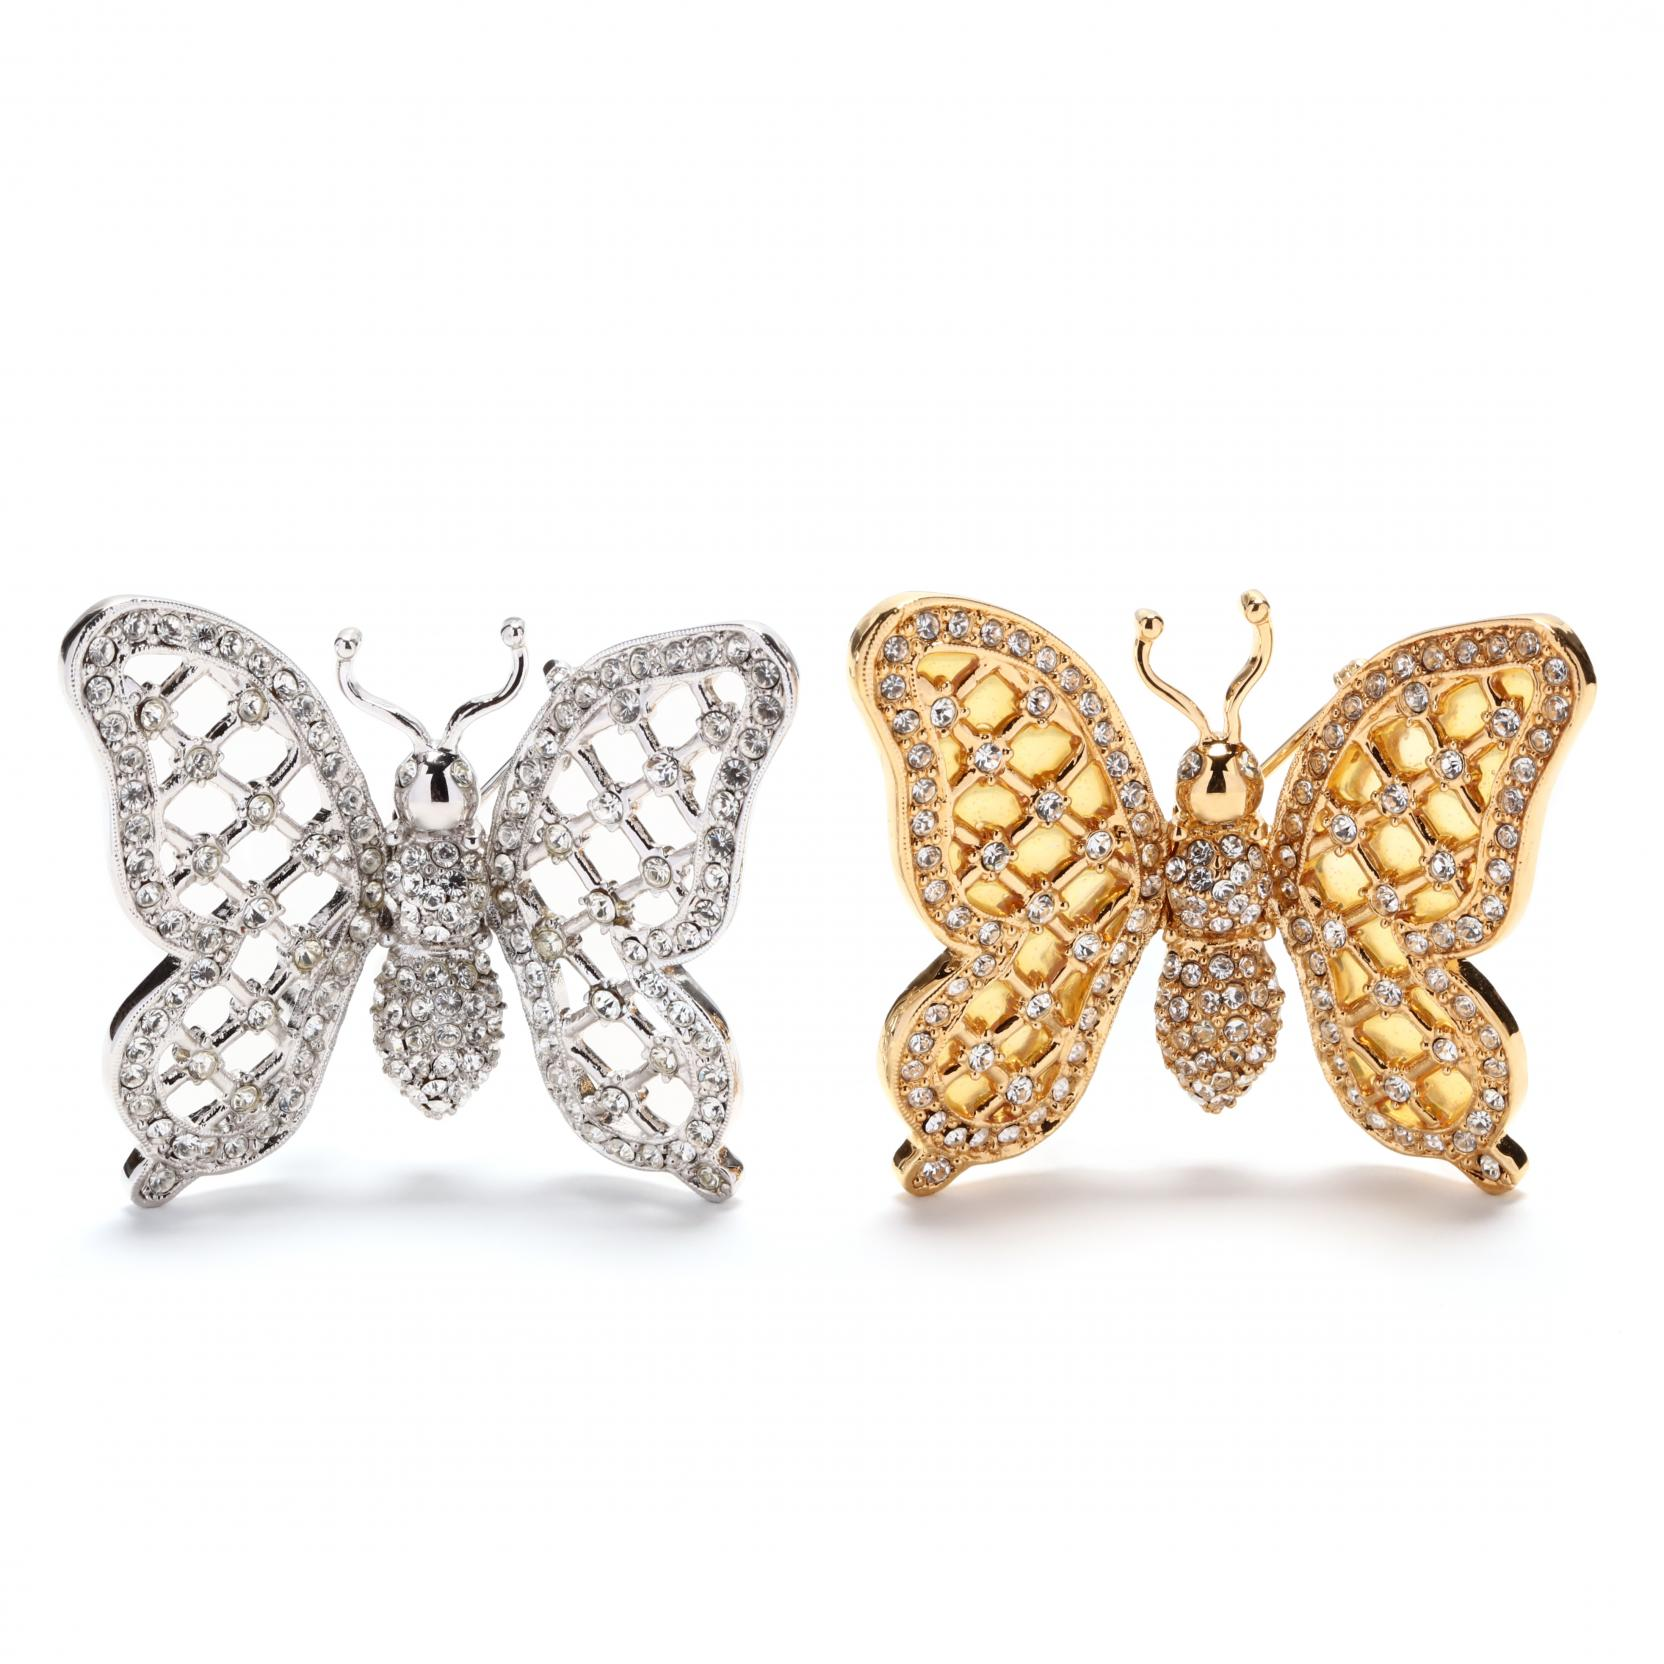 two-costume-butterfly-brooches-st-john